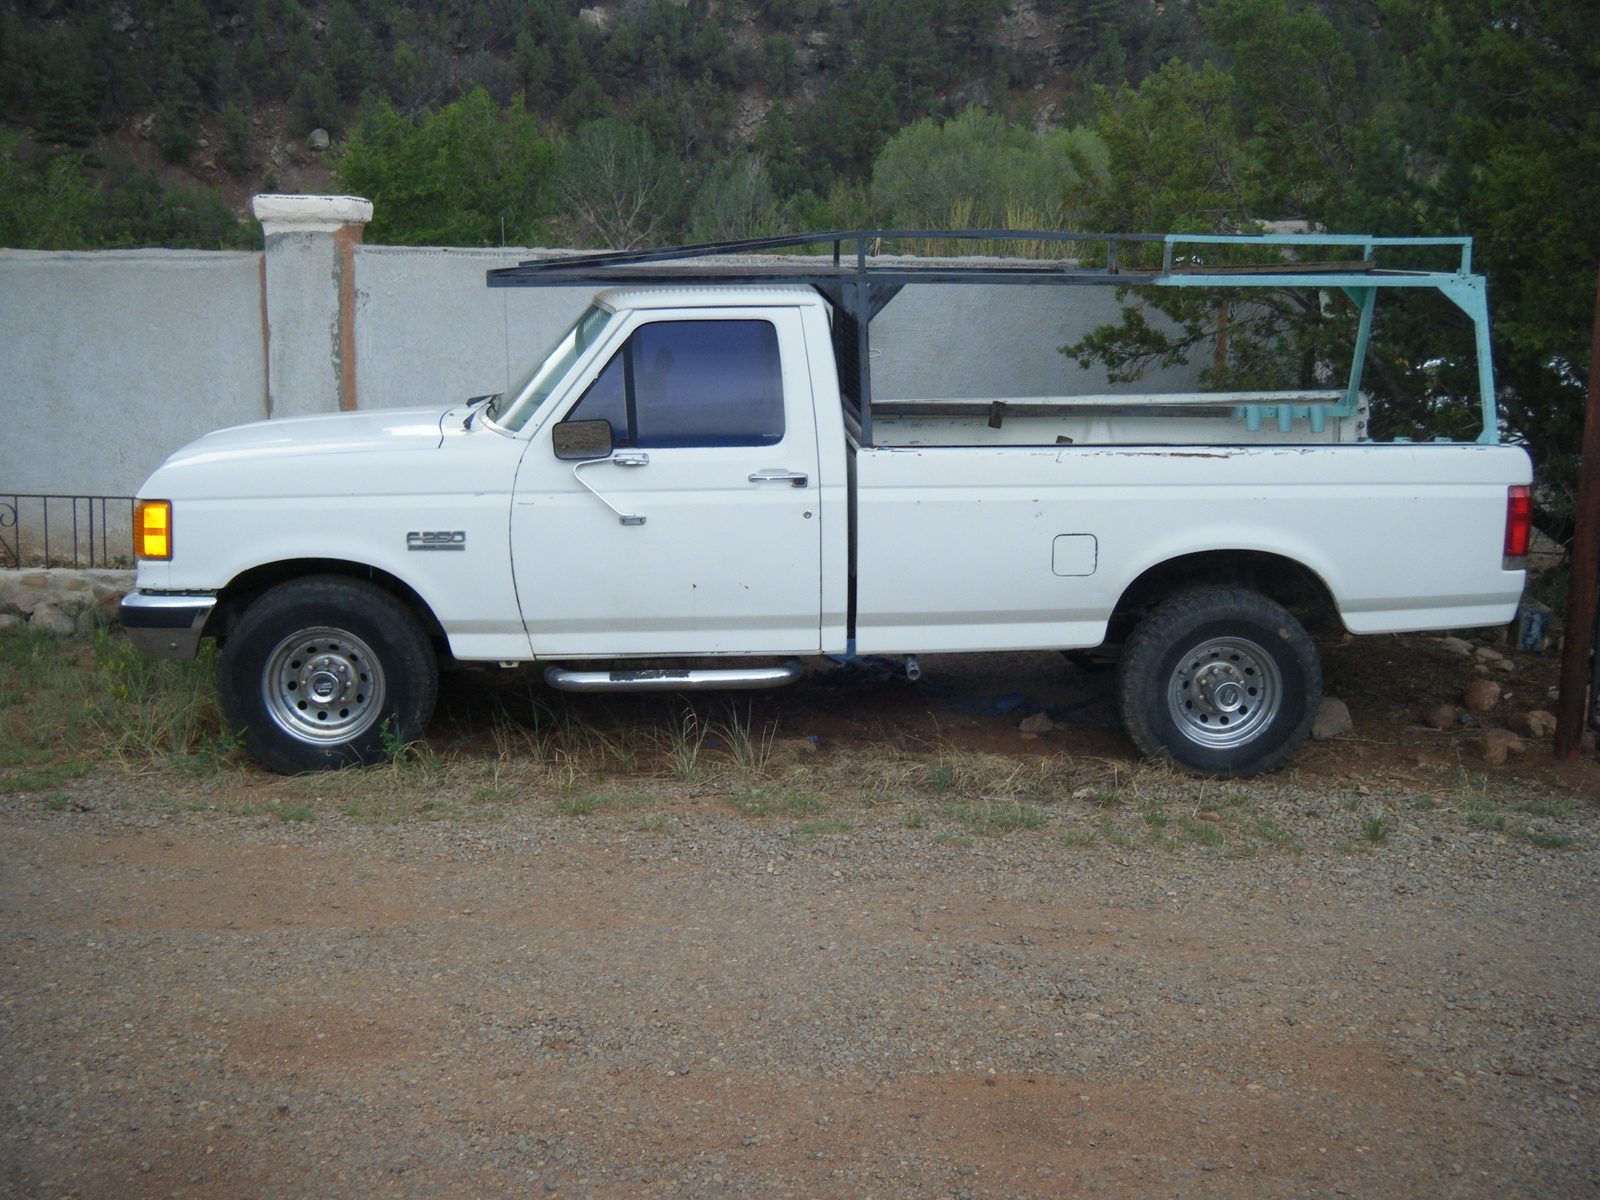 Ford f-250 1987 photo - 2